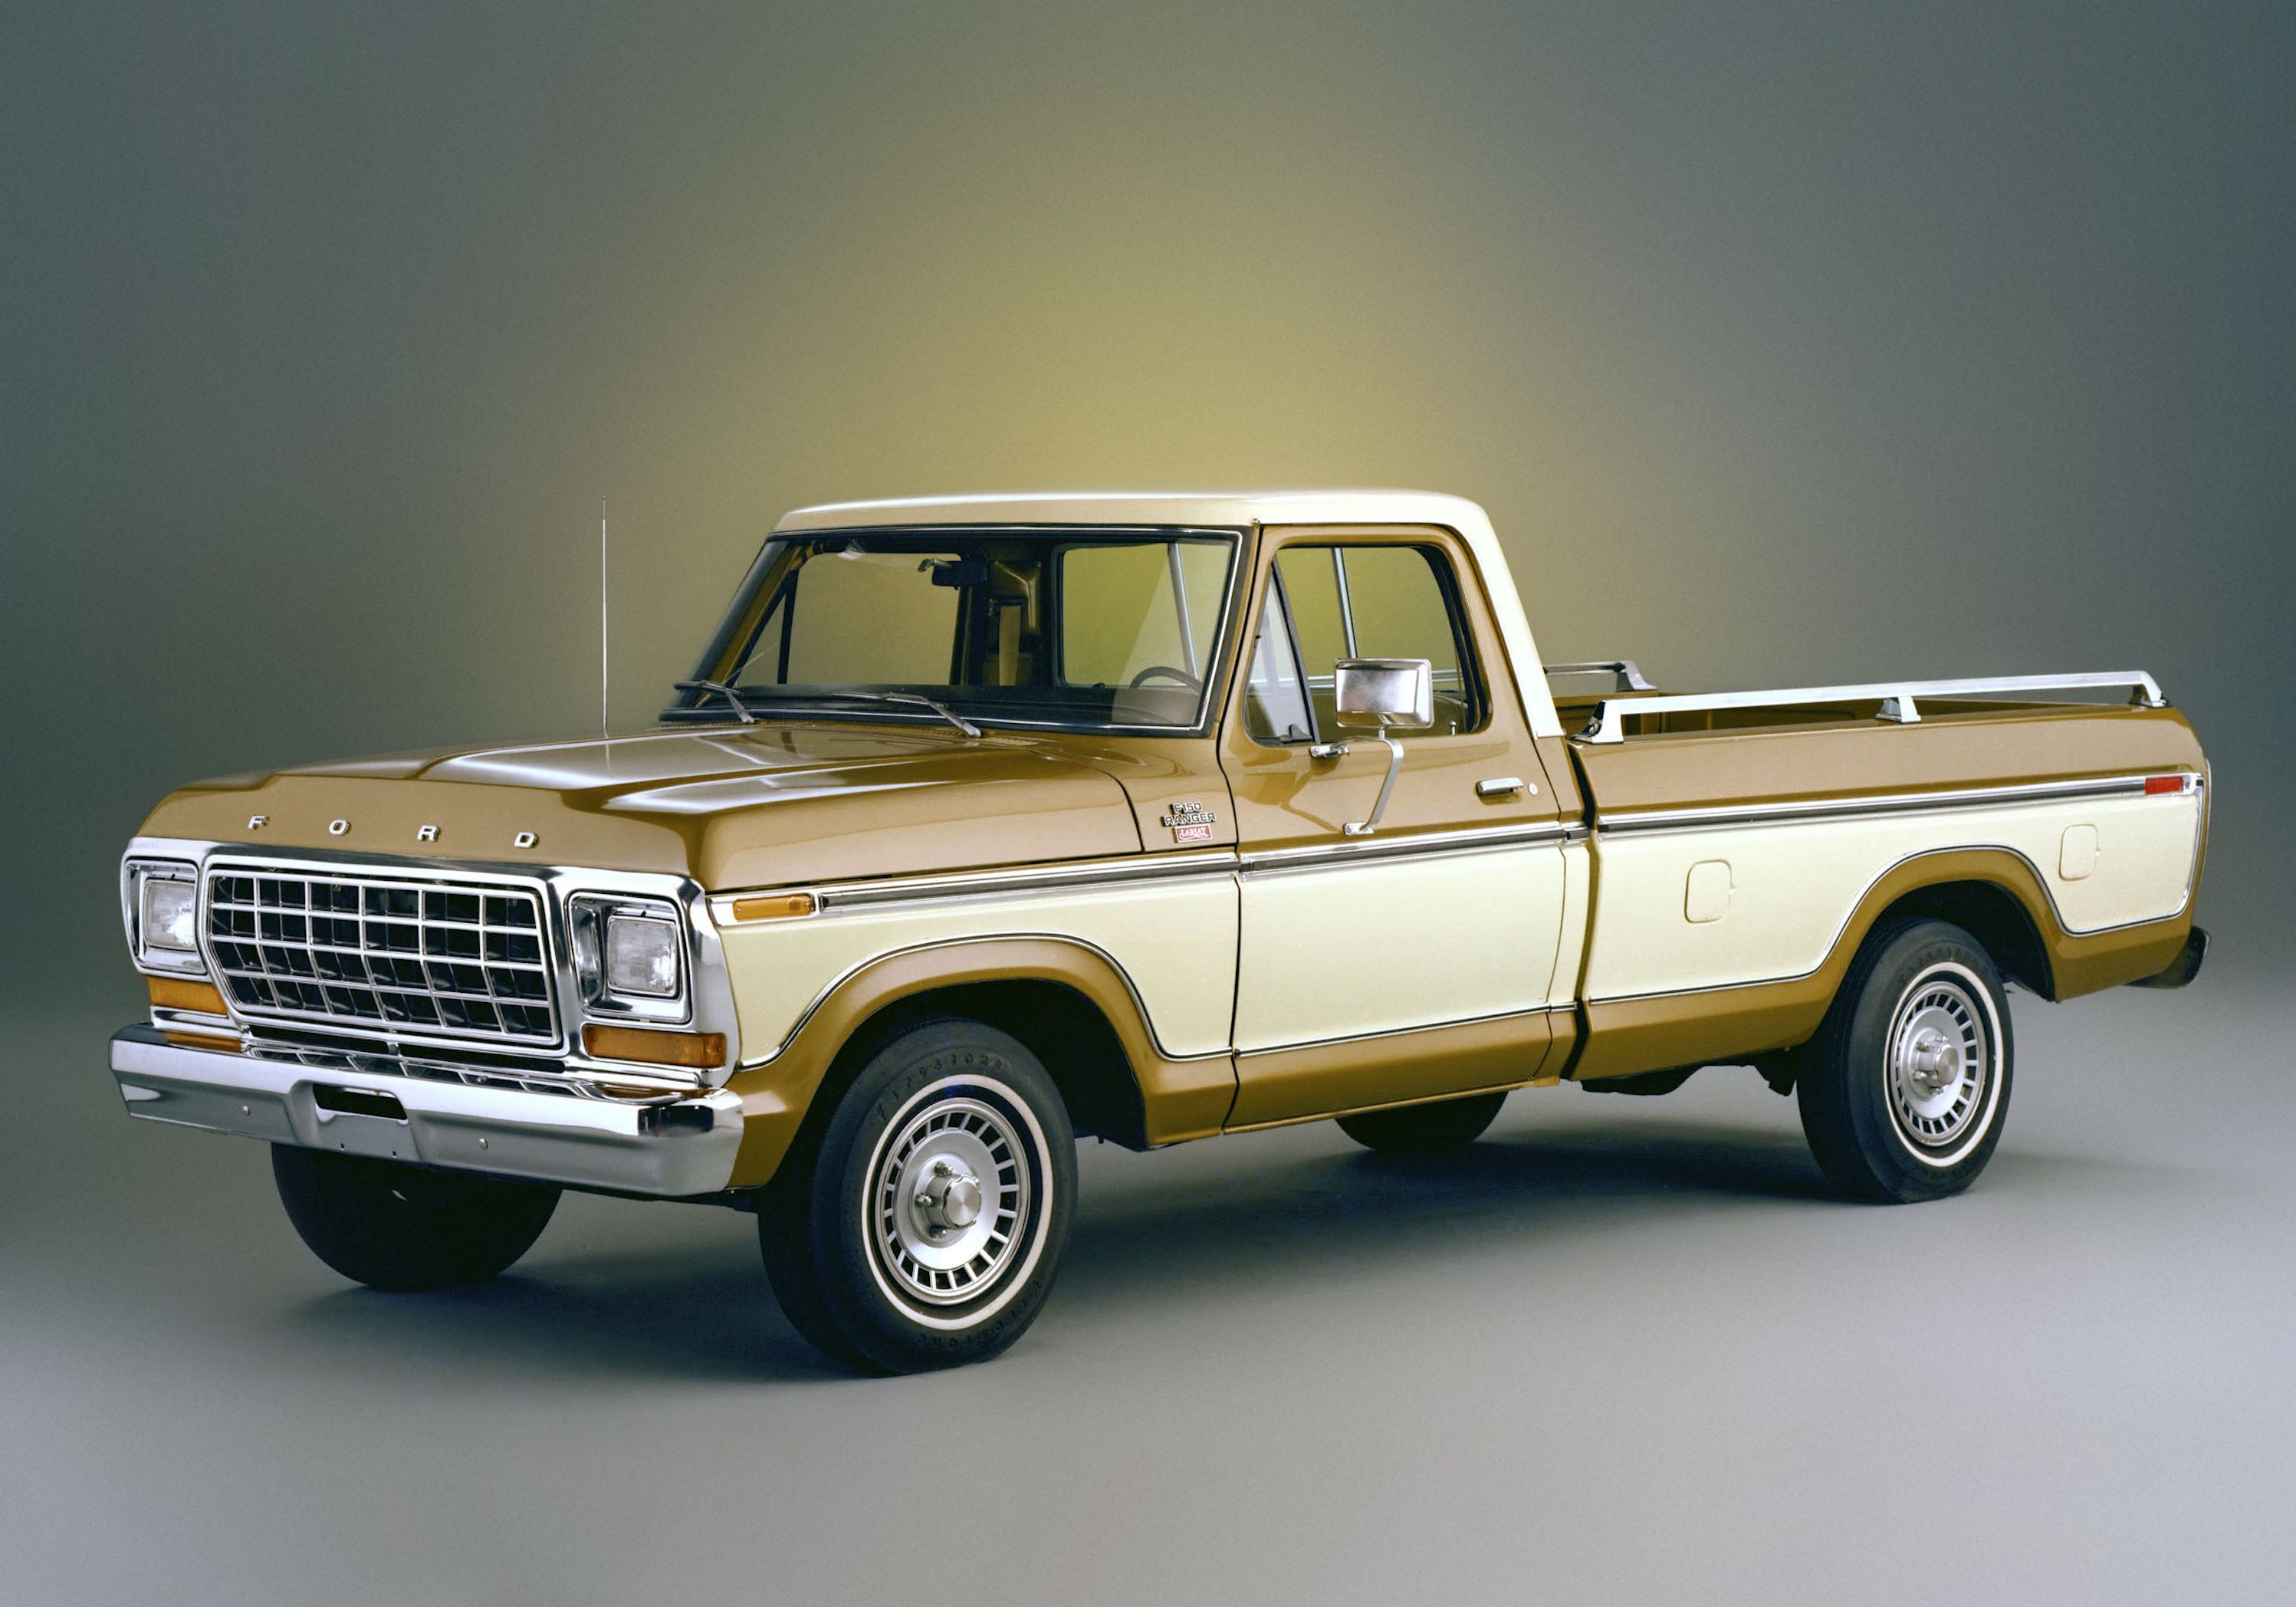 hight resolution of 1979 ford f 150 ranger lariat pickup